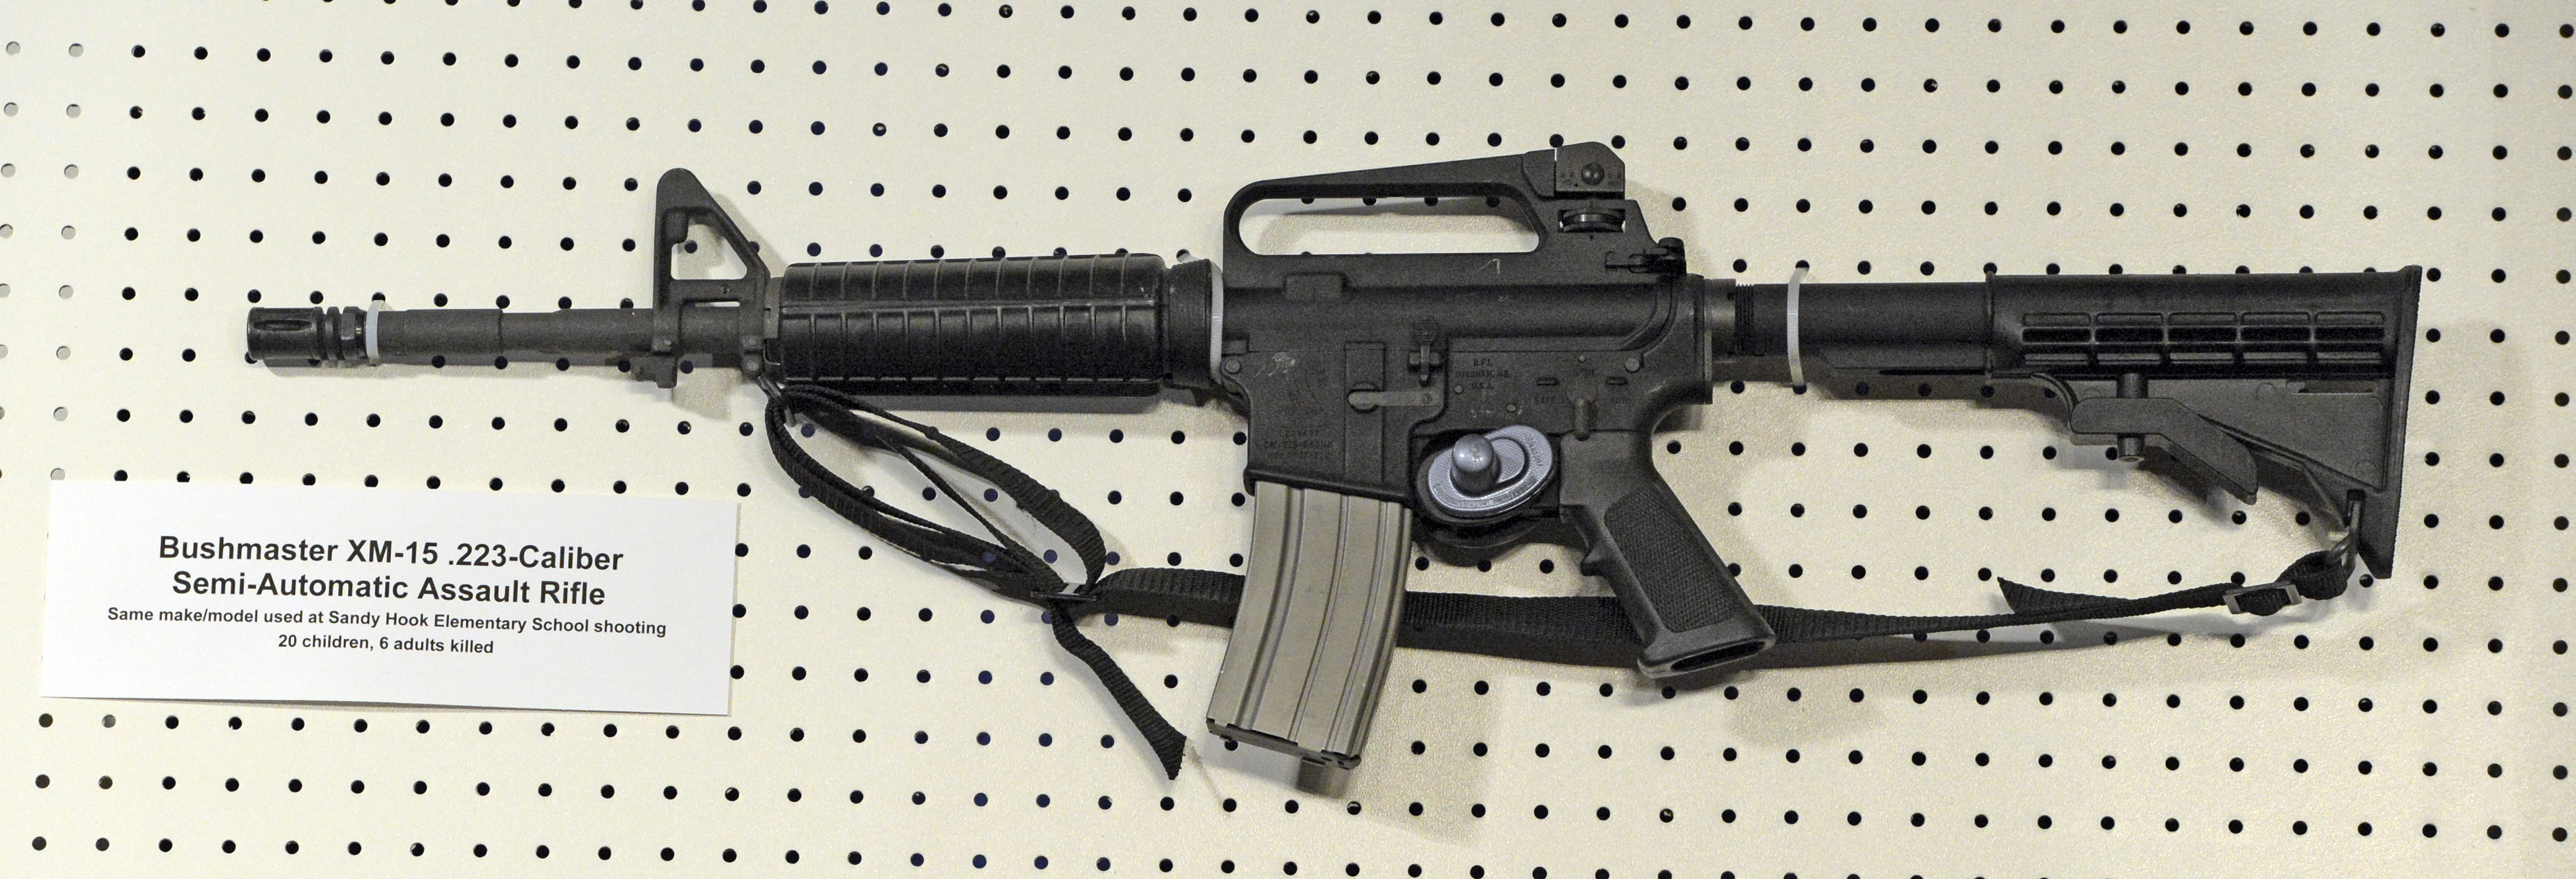 An AR-15 semi-automatic weapon - which has been used in many US mass shootings. Credit: PA